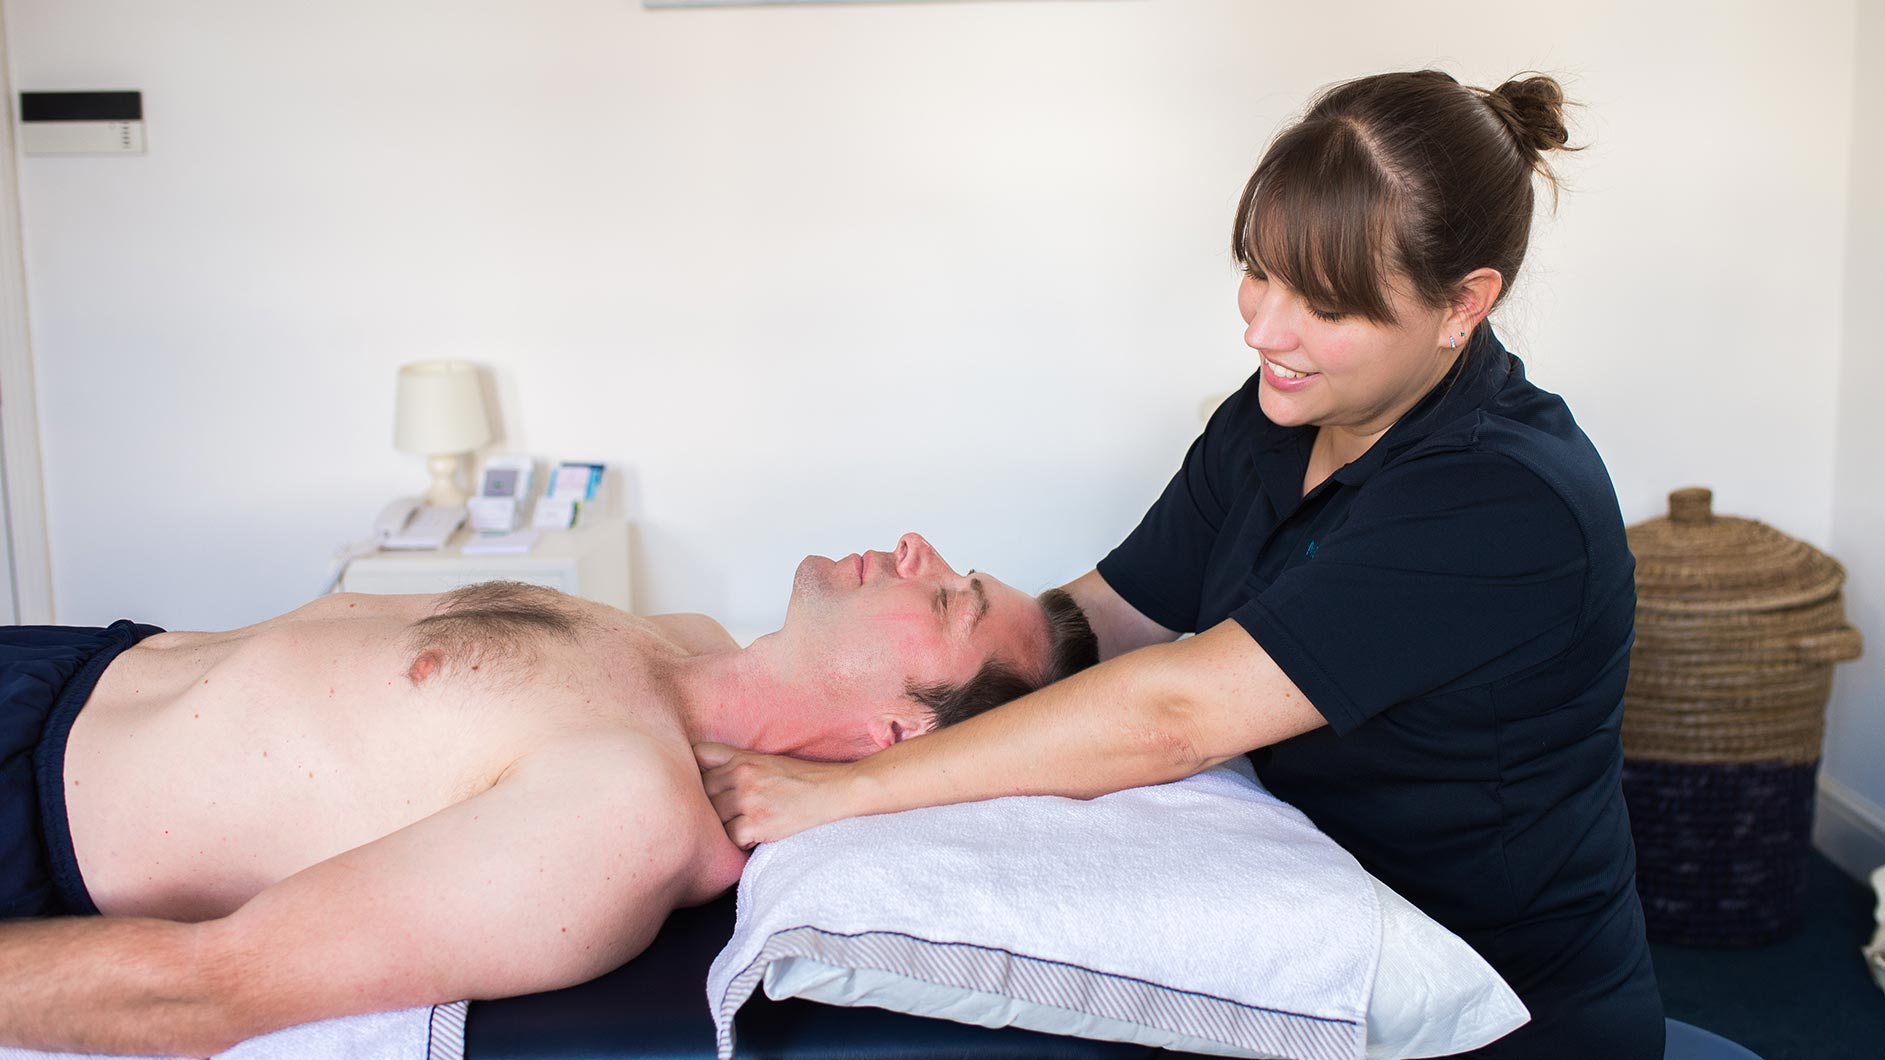 Meadowside Osteopathy - Farnham, Surrey - Neck Pain and Upper Back Pain Treatments